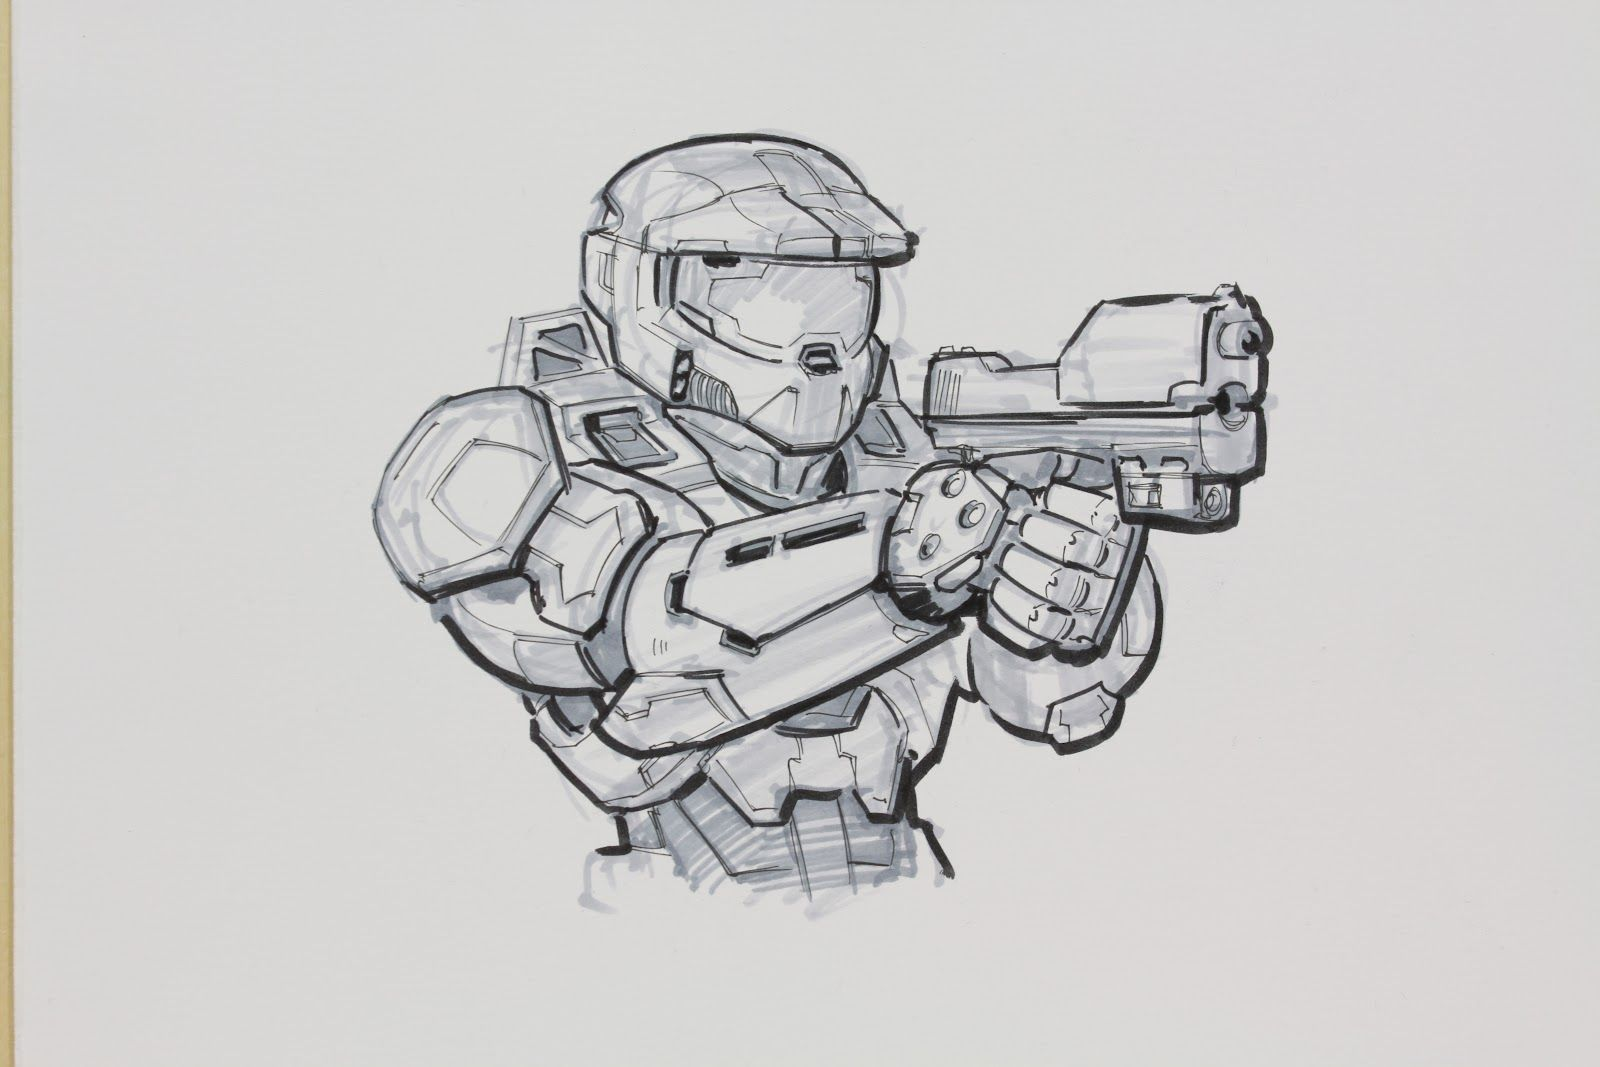 Fan Request Master Chief Halo Main Character Isaac Hannaford